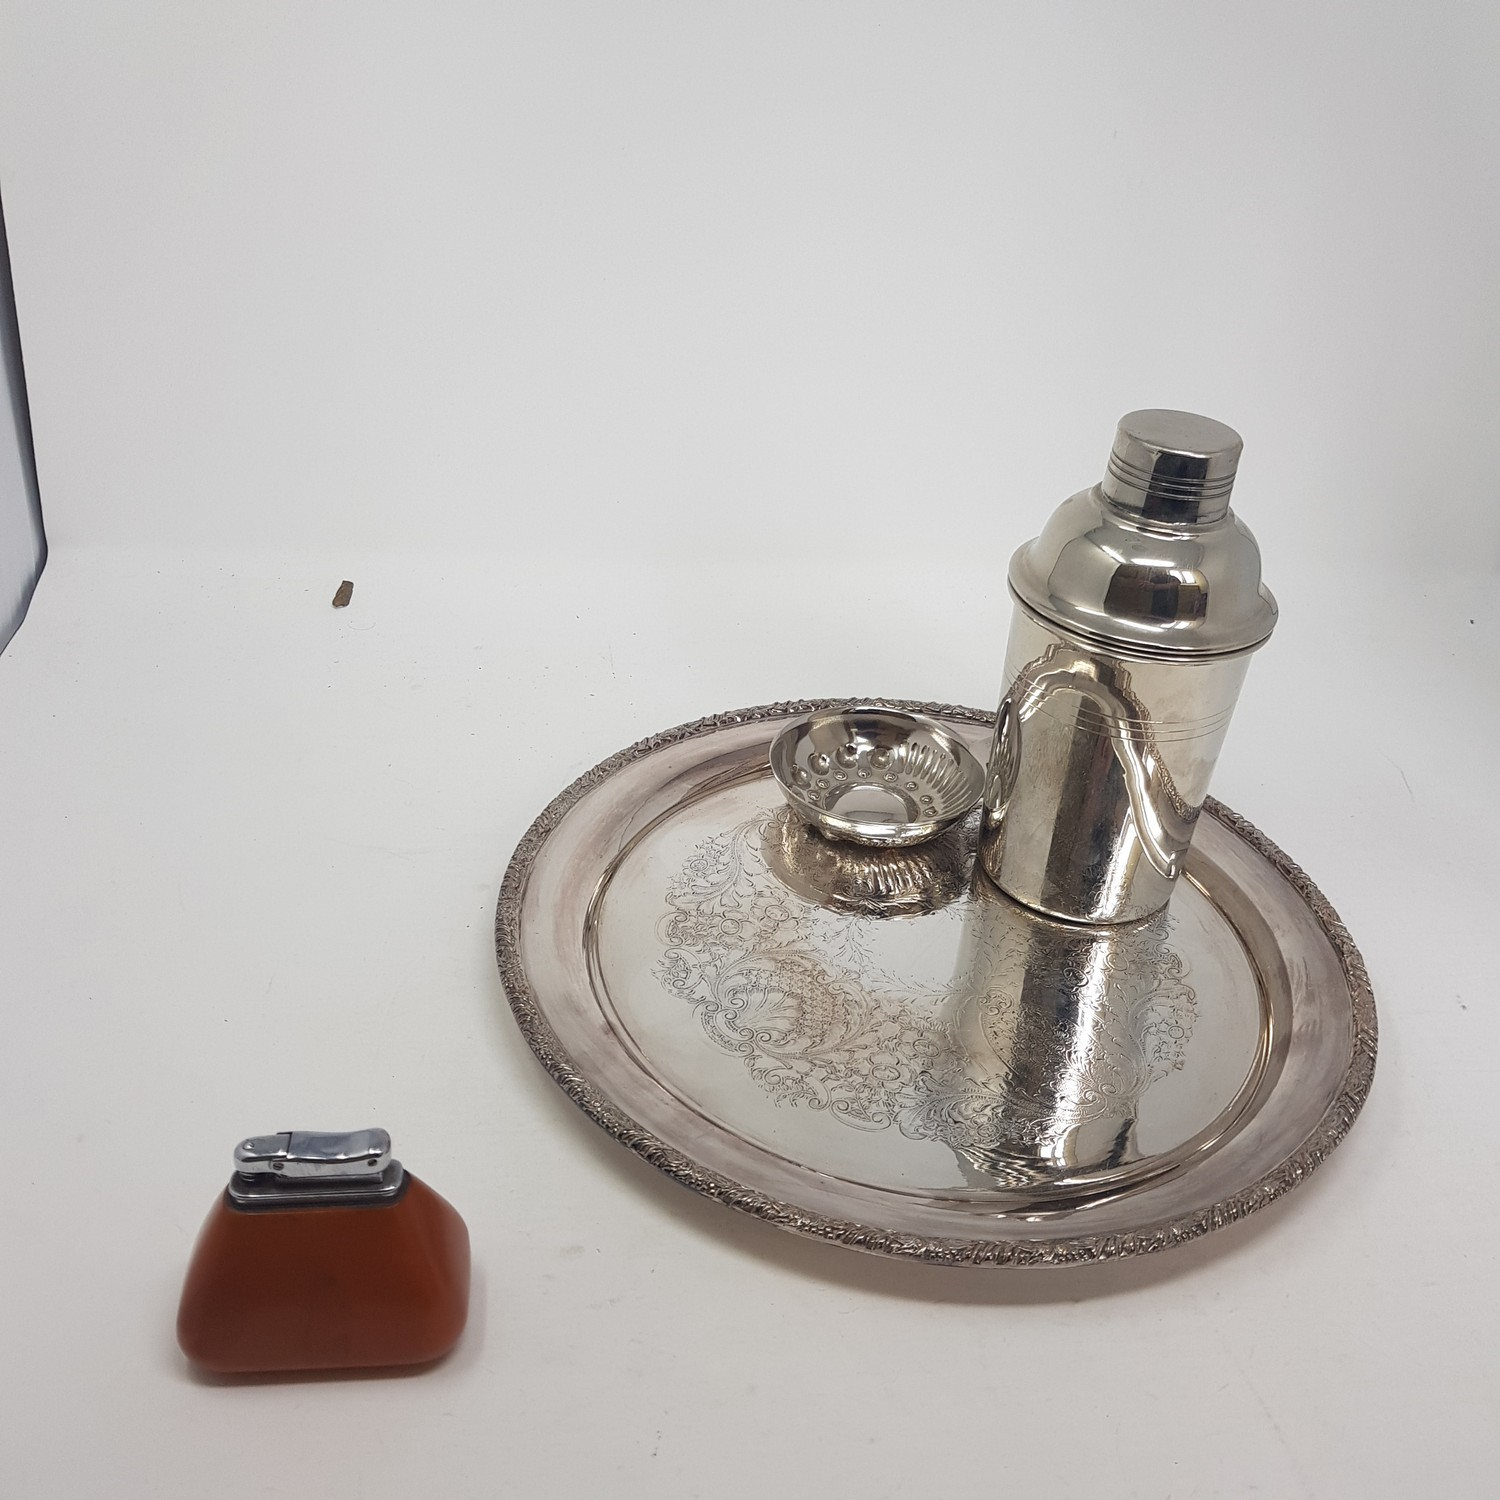 A silver plated cocktail shaker, other silver plate and metalwares (box) - Image 3 of 3